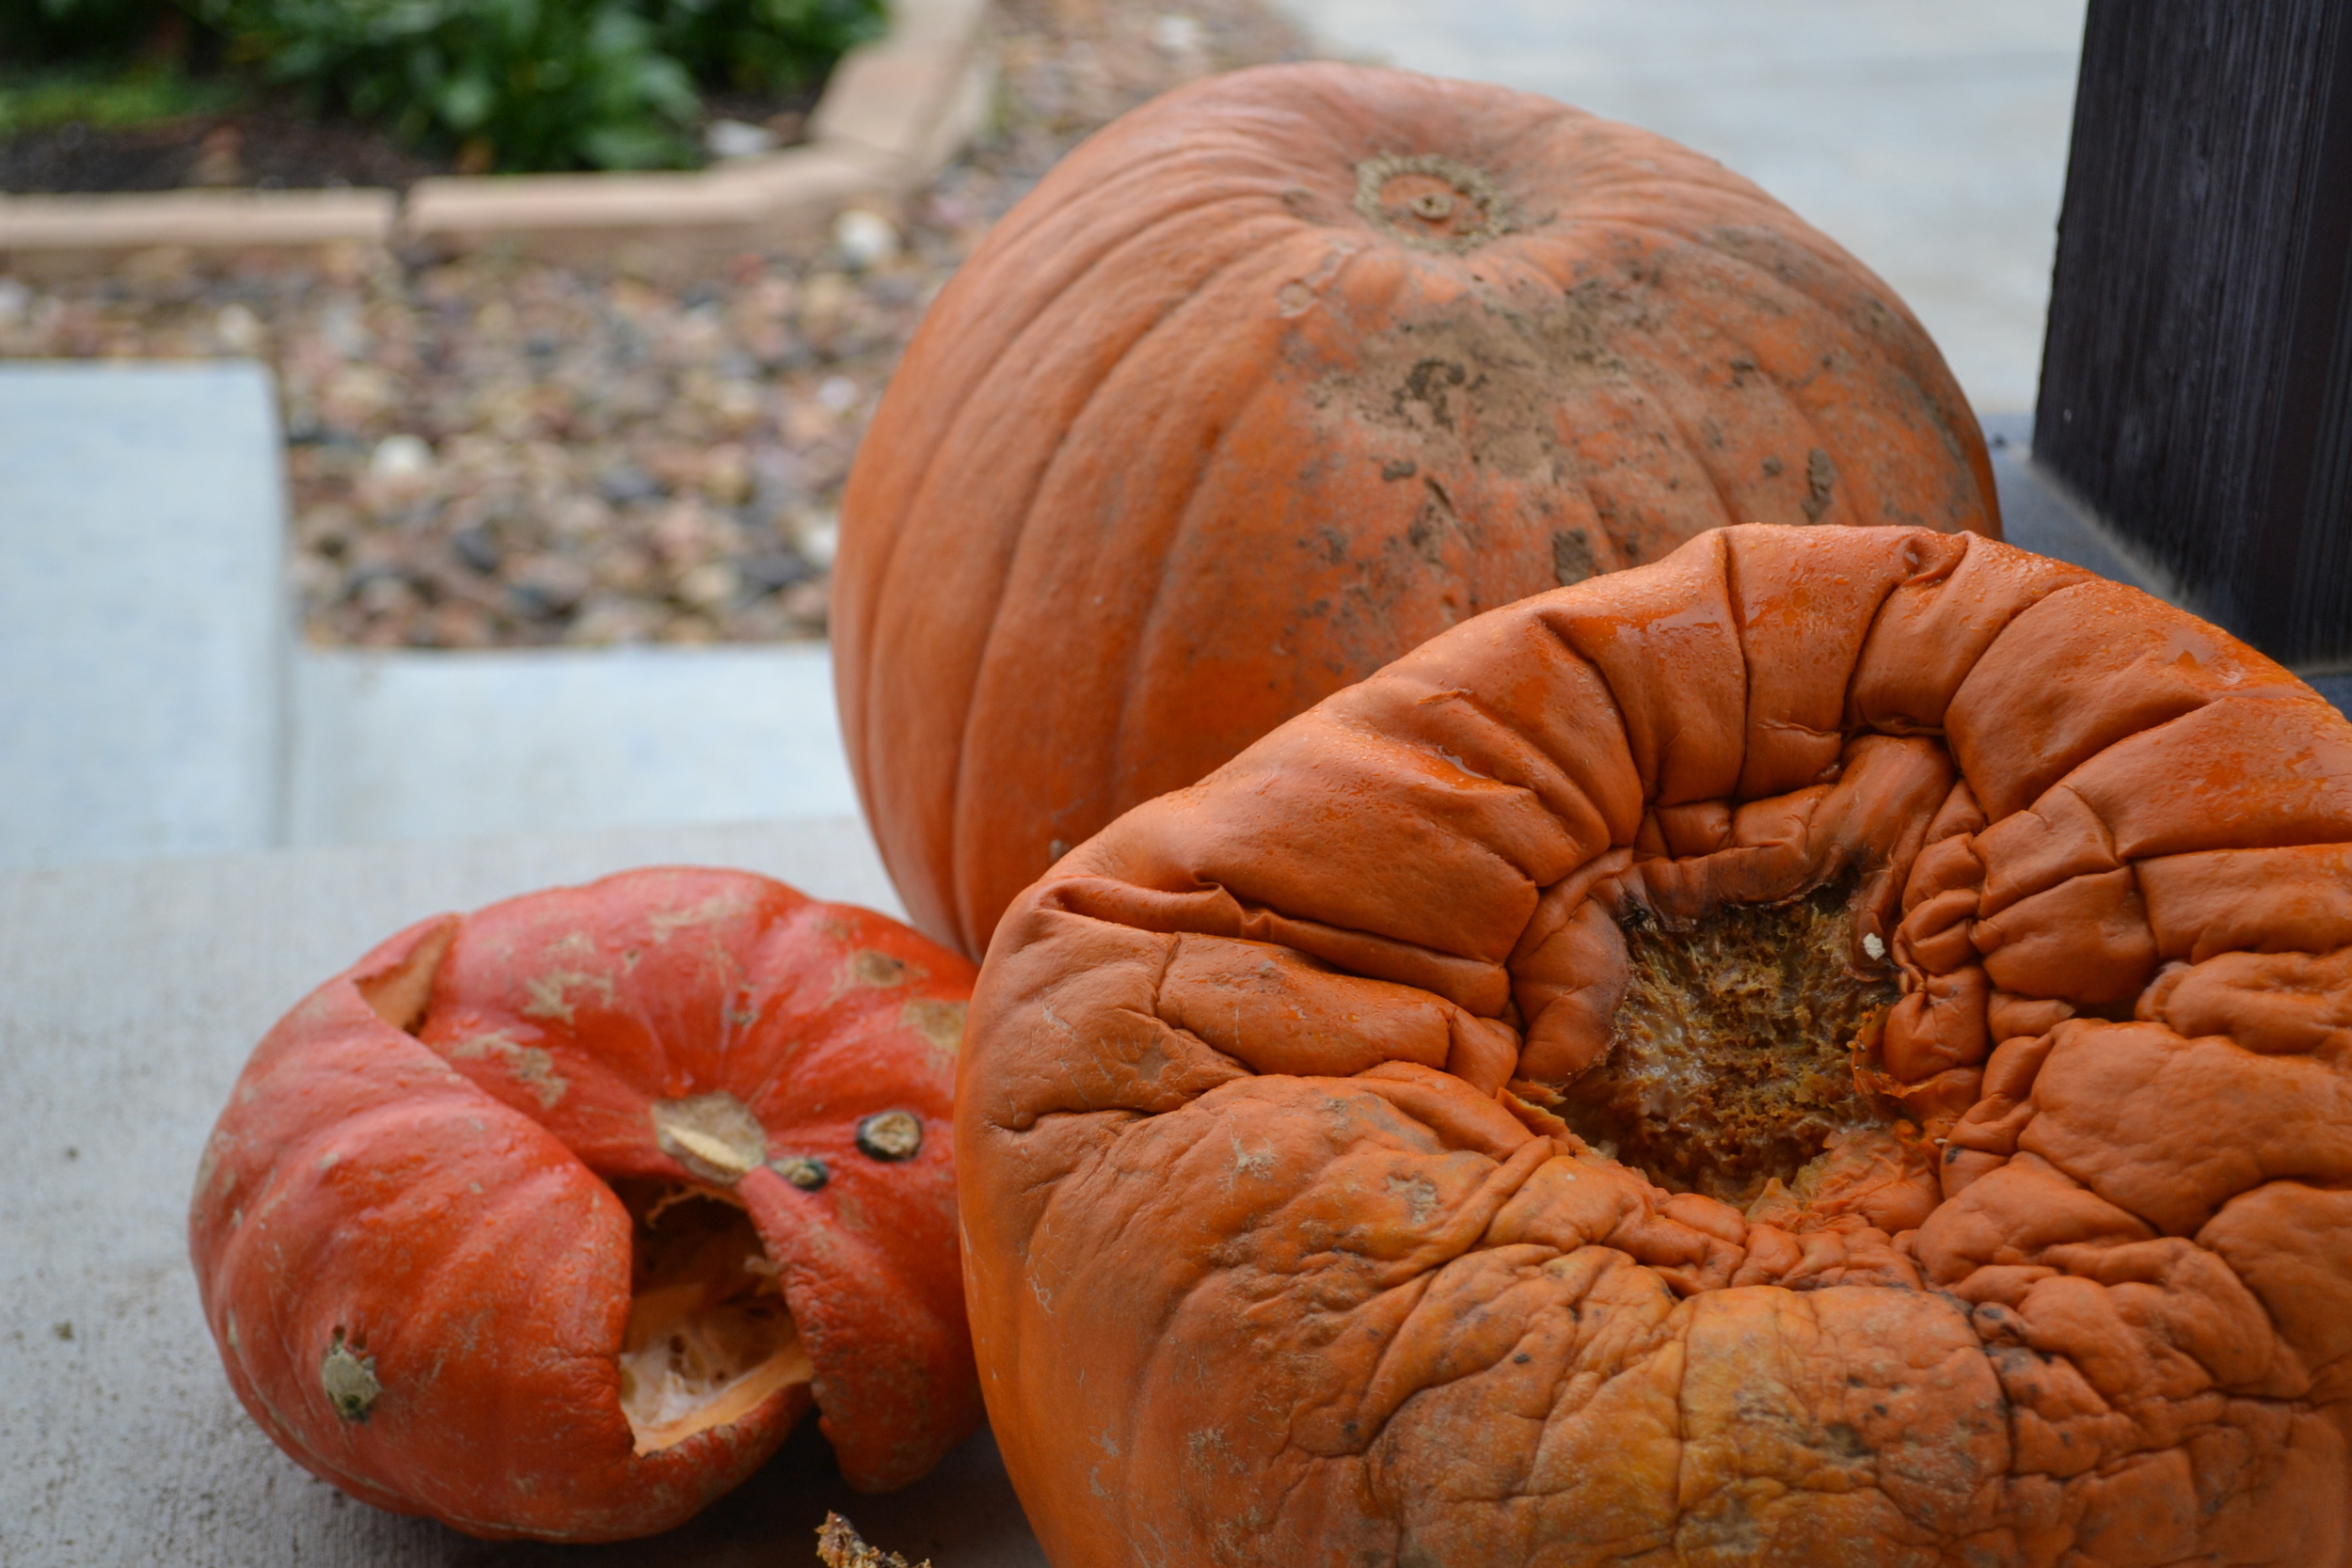 A picture of some rotting pumpkins in Colorado